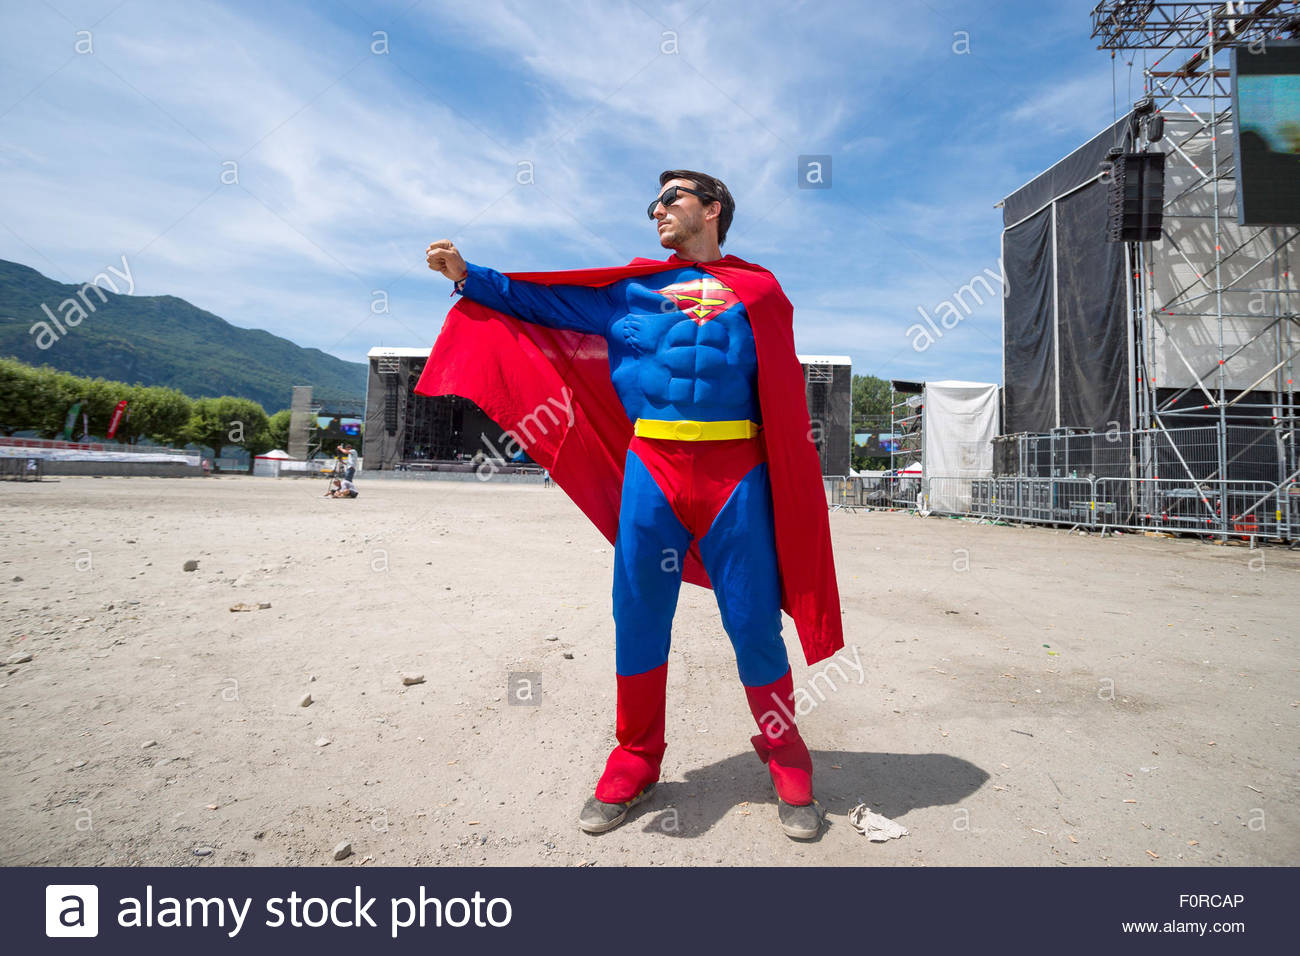 Superman landing in front of the stages at Musilac pop rock summer festival - Stock Image